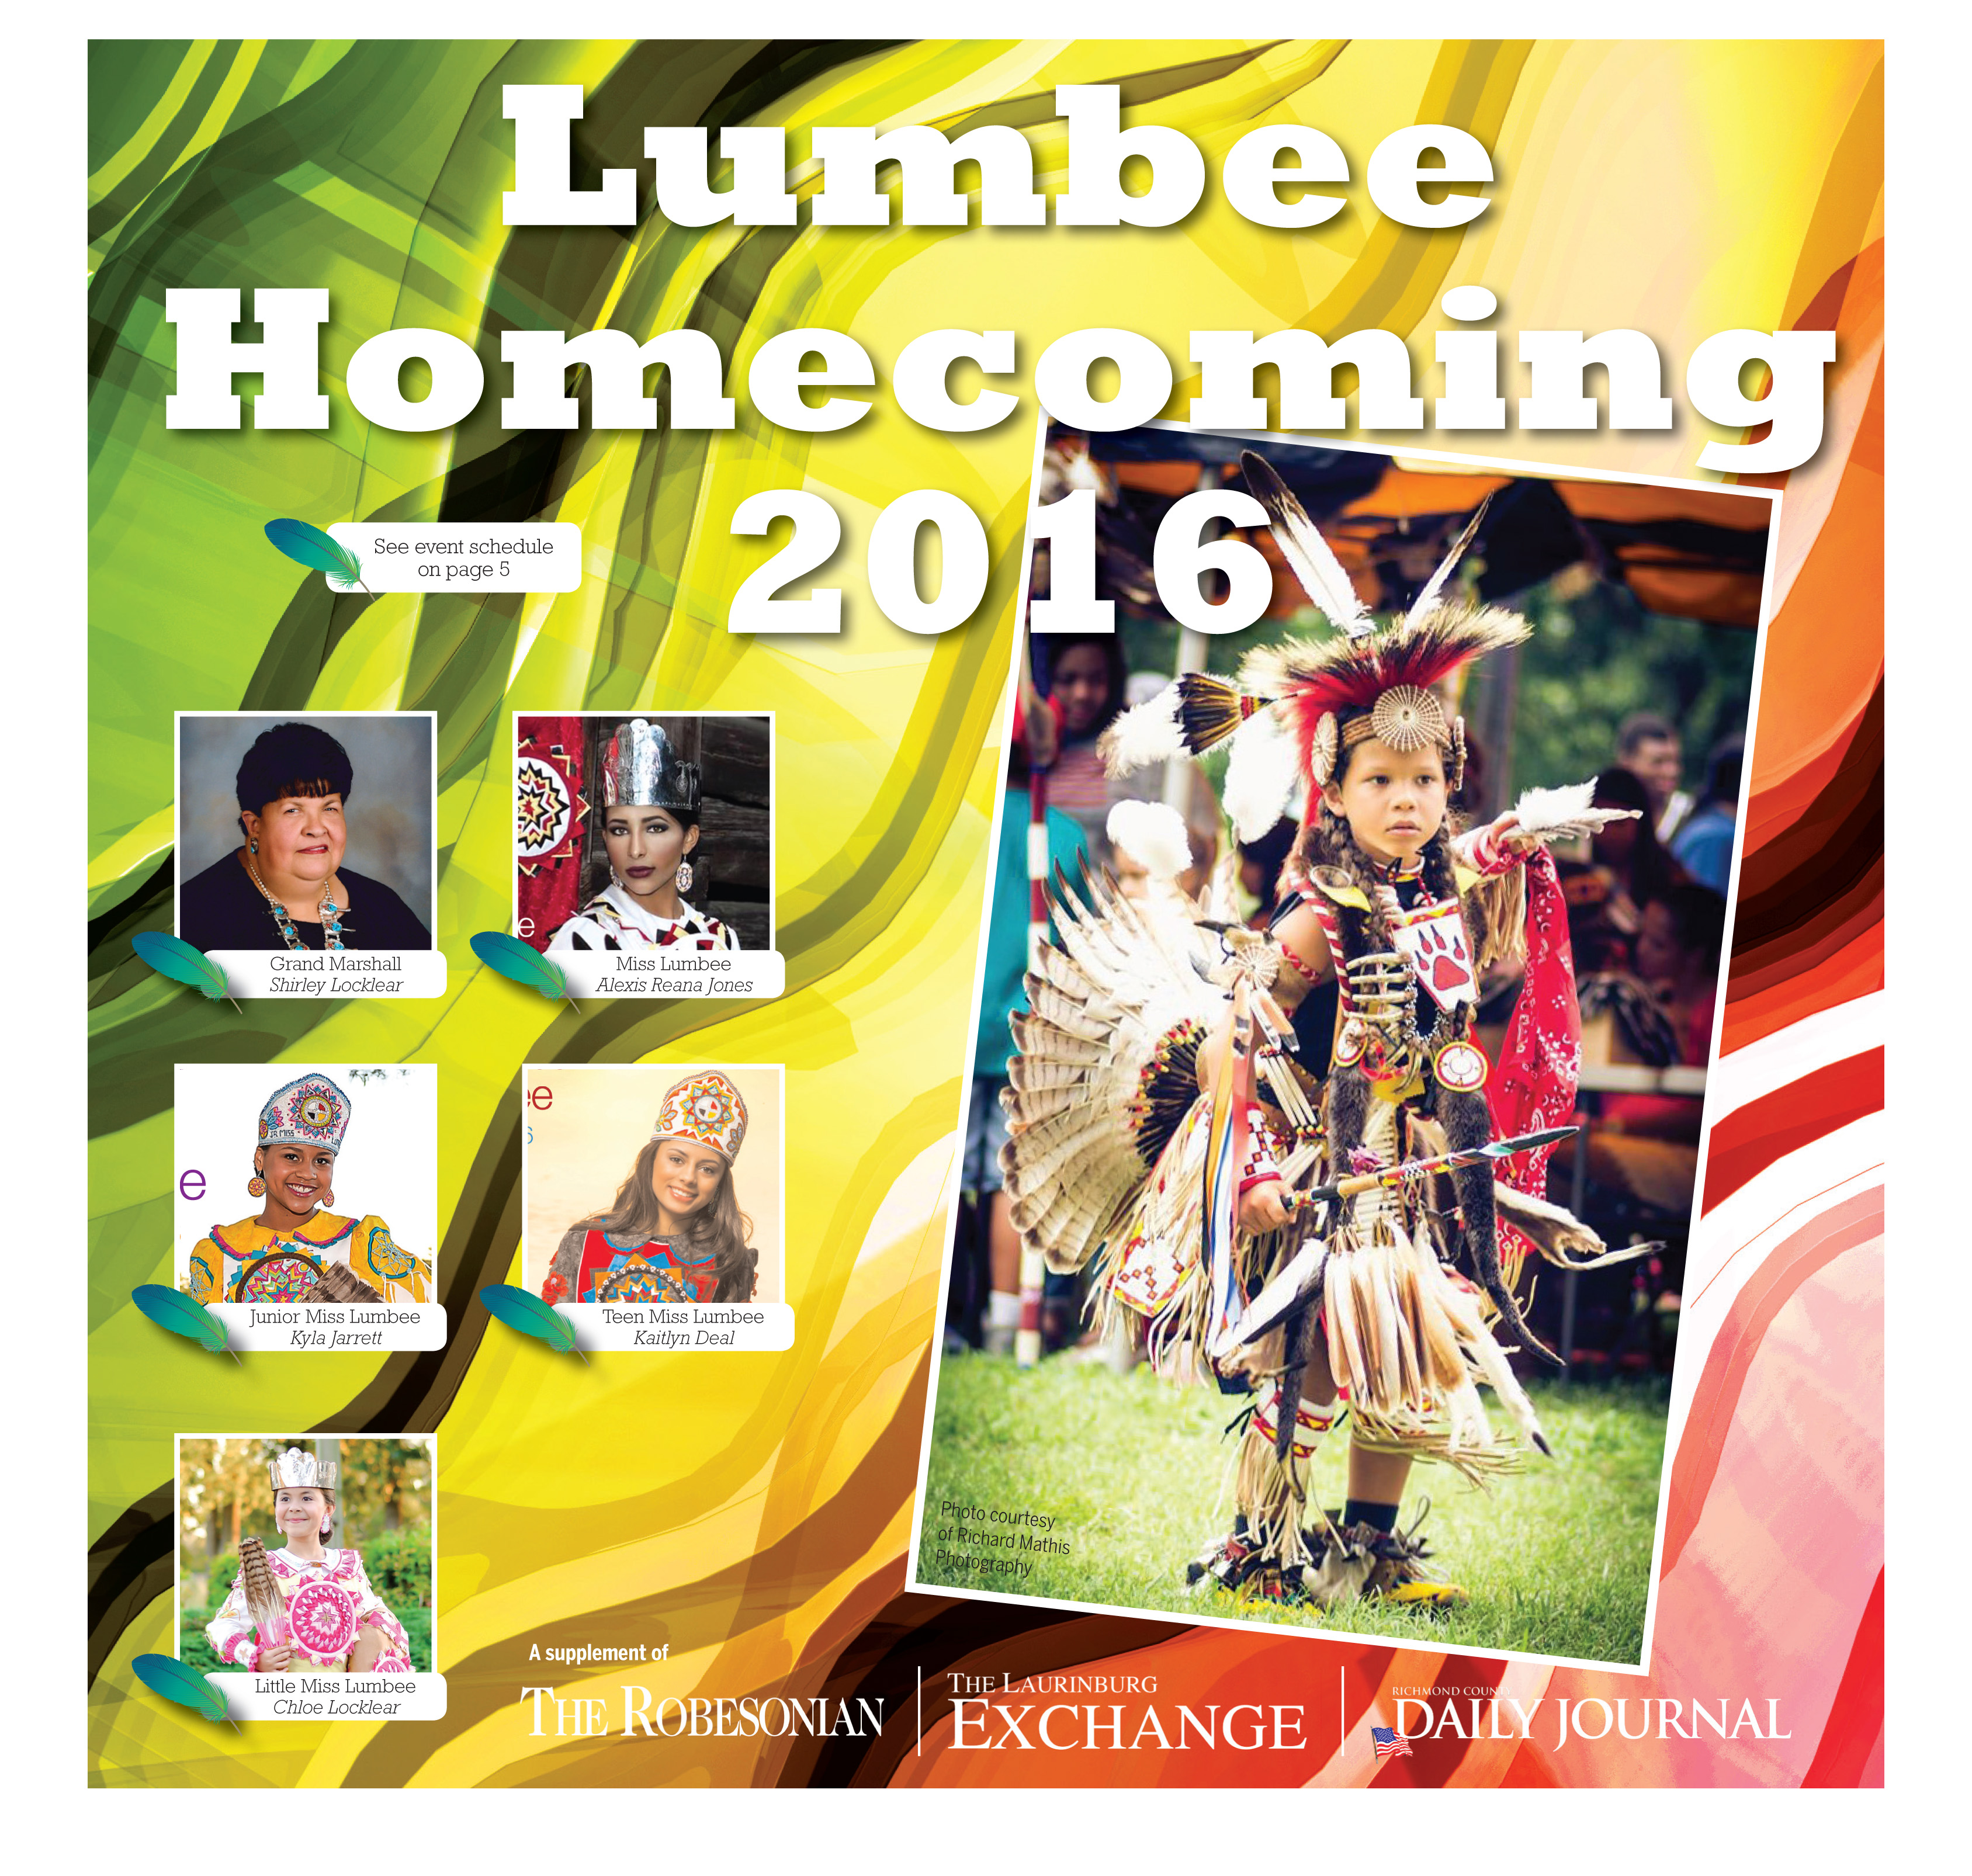 Lumbee Homecoming 2016